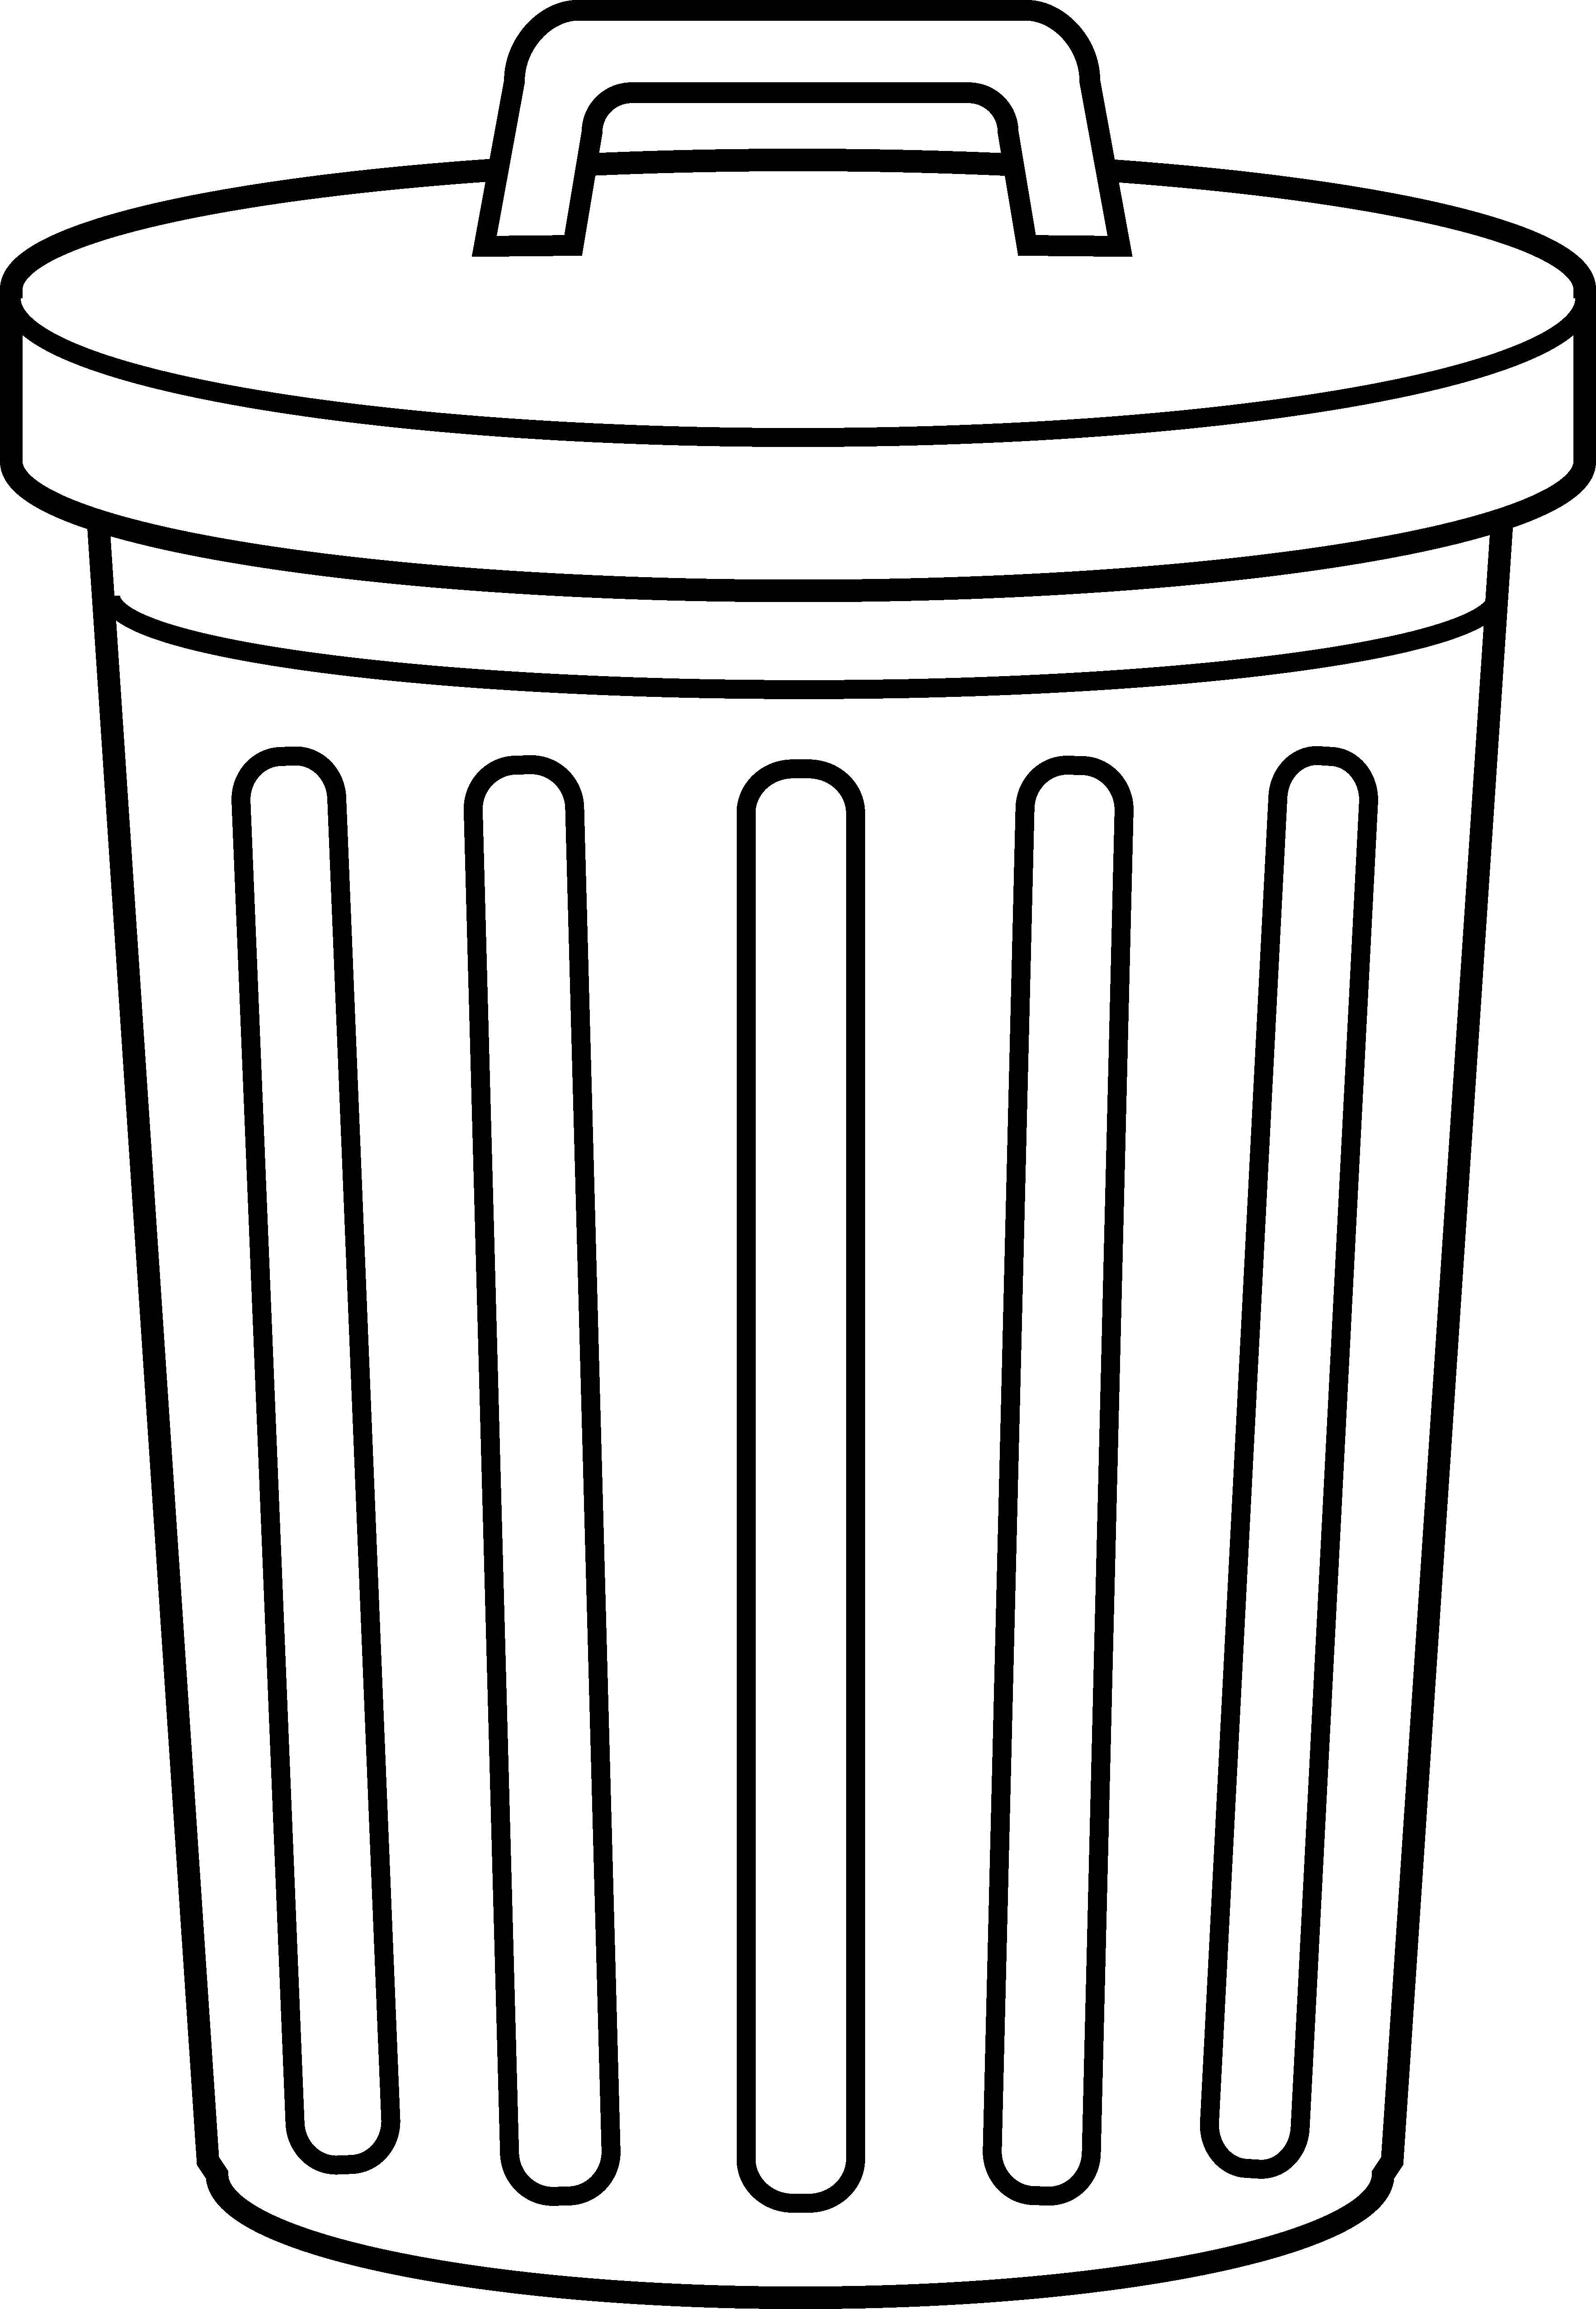 Trash cans clipart.